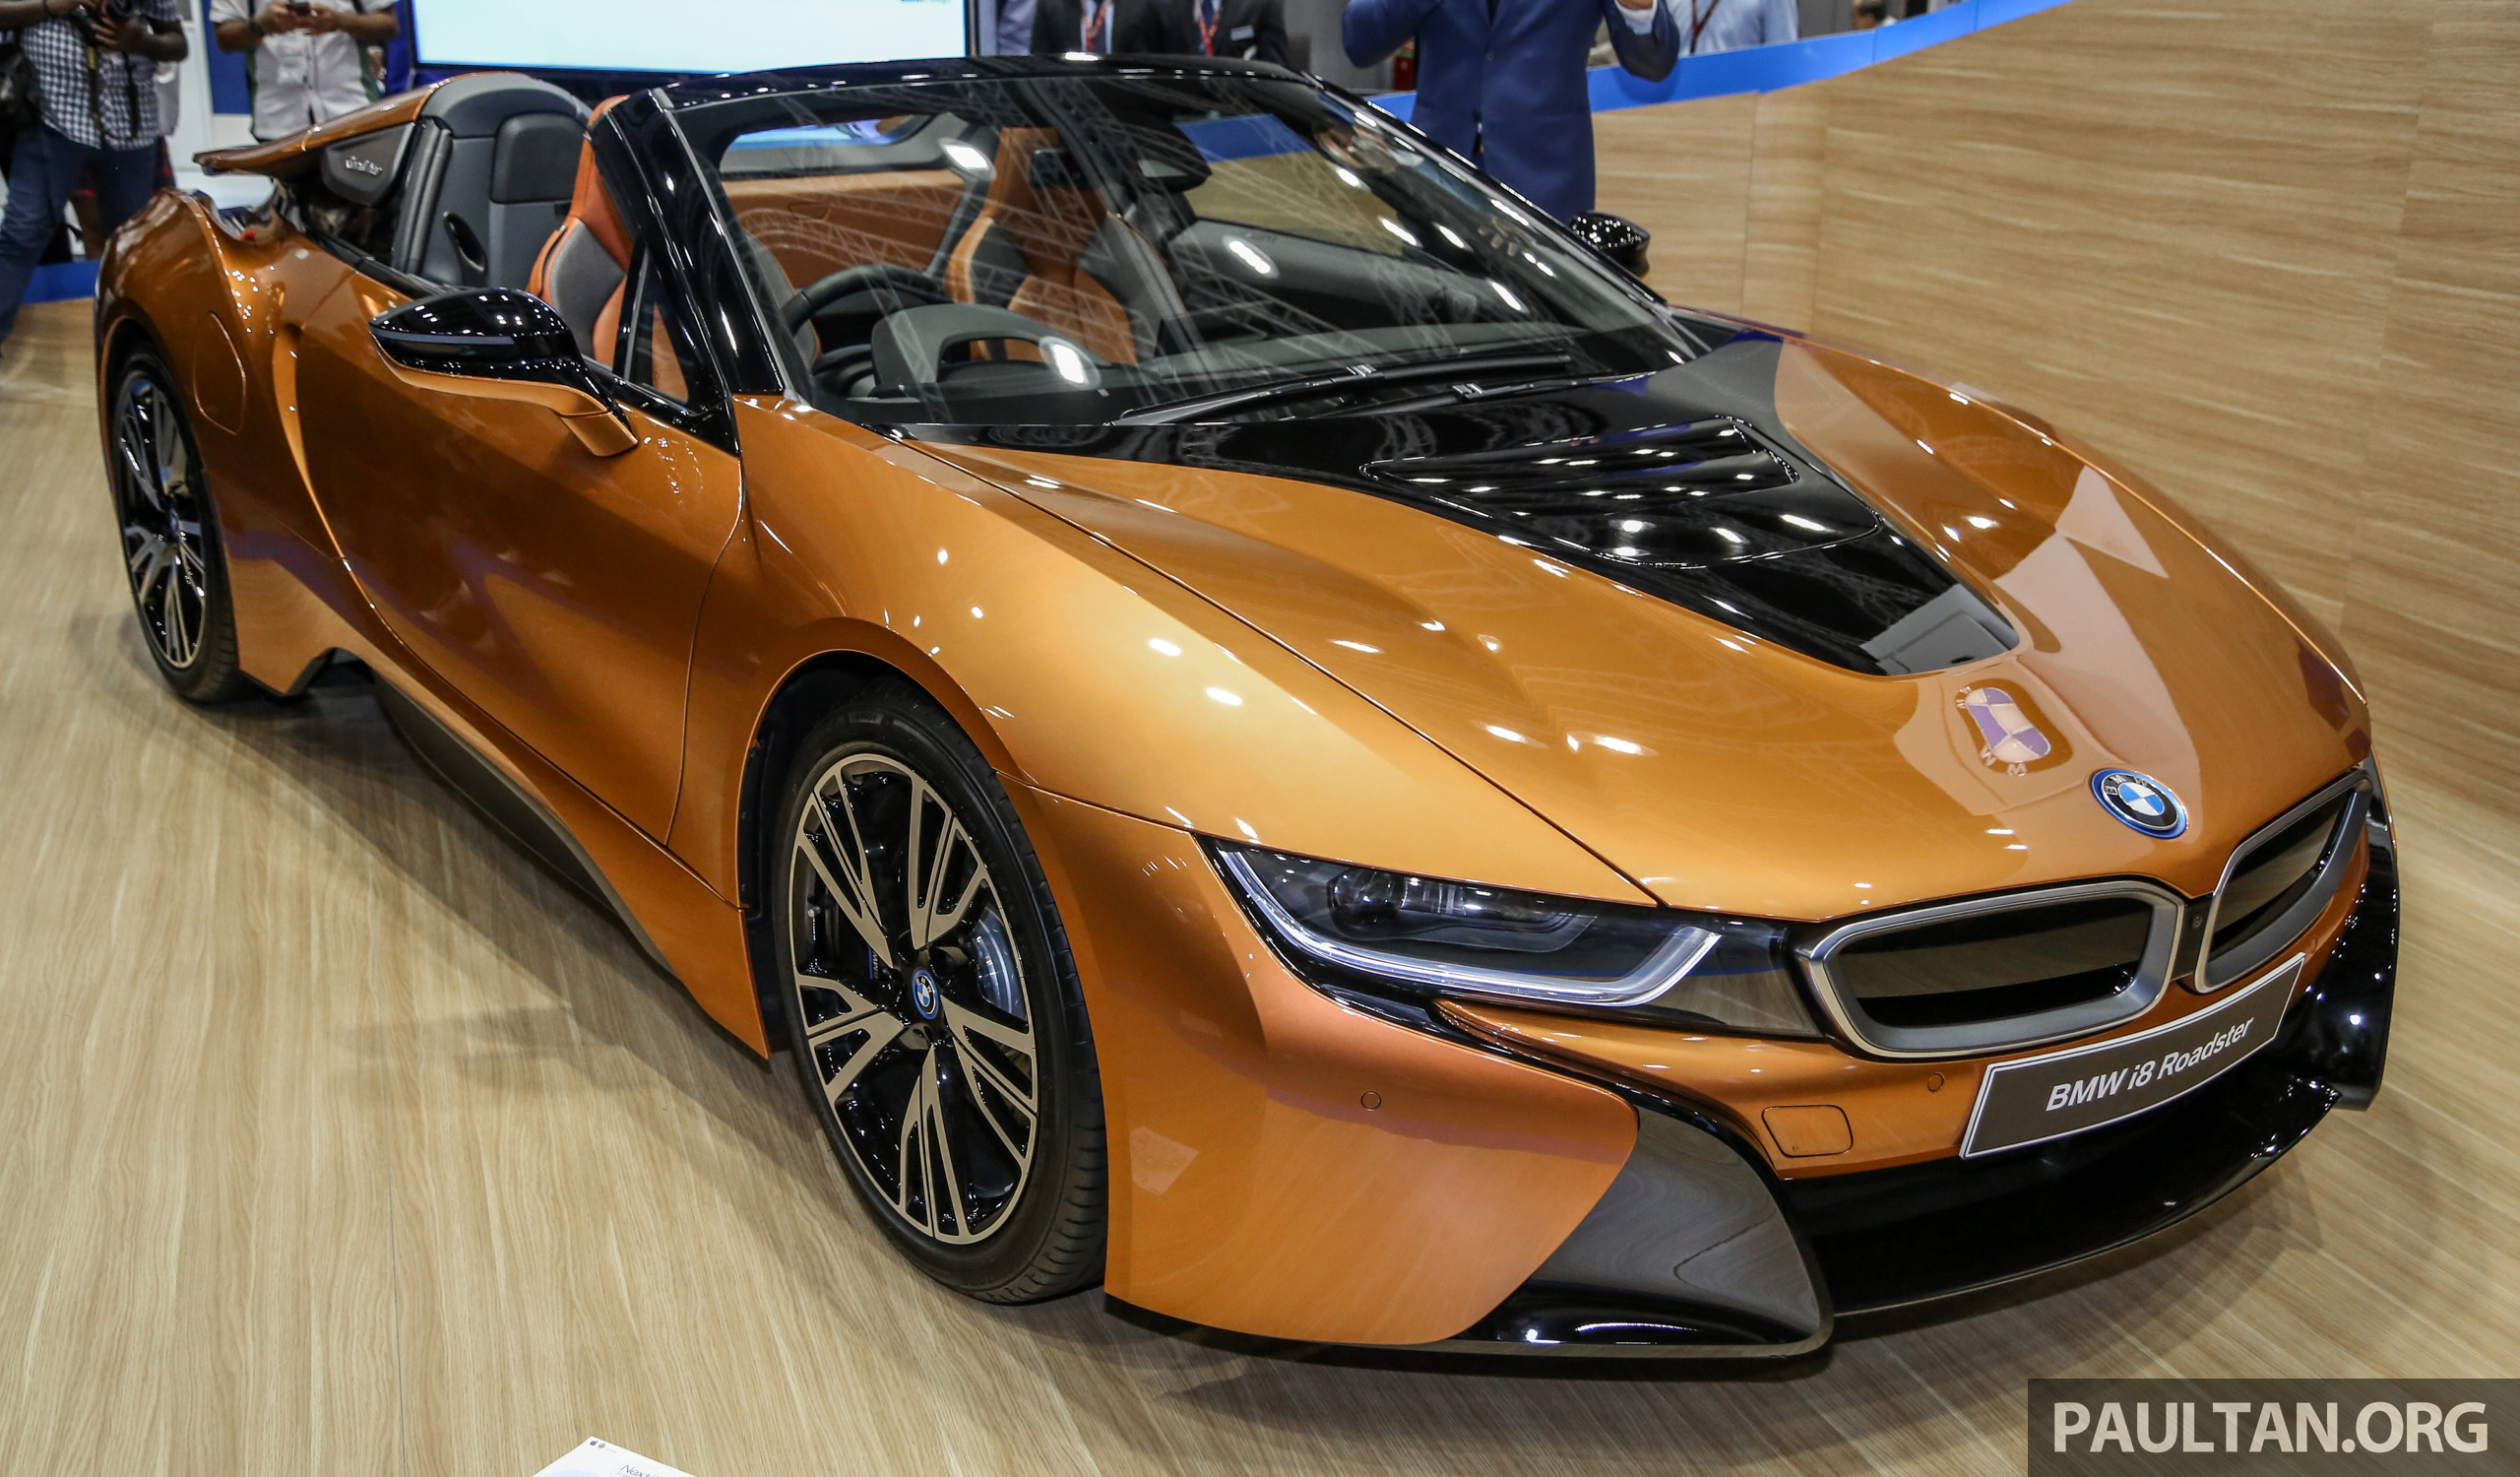 Bmw I8 Roadster Launched In Malaysia Rm1 5 Million Paultan Org